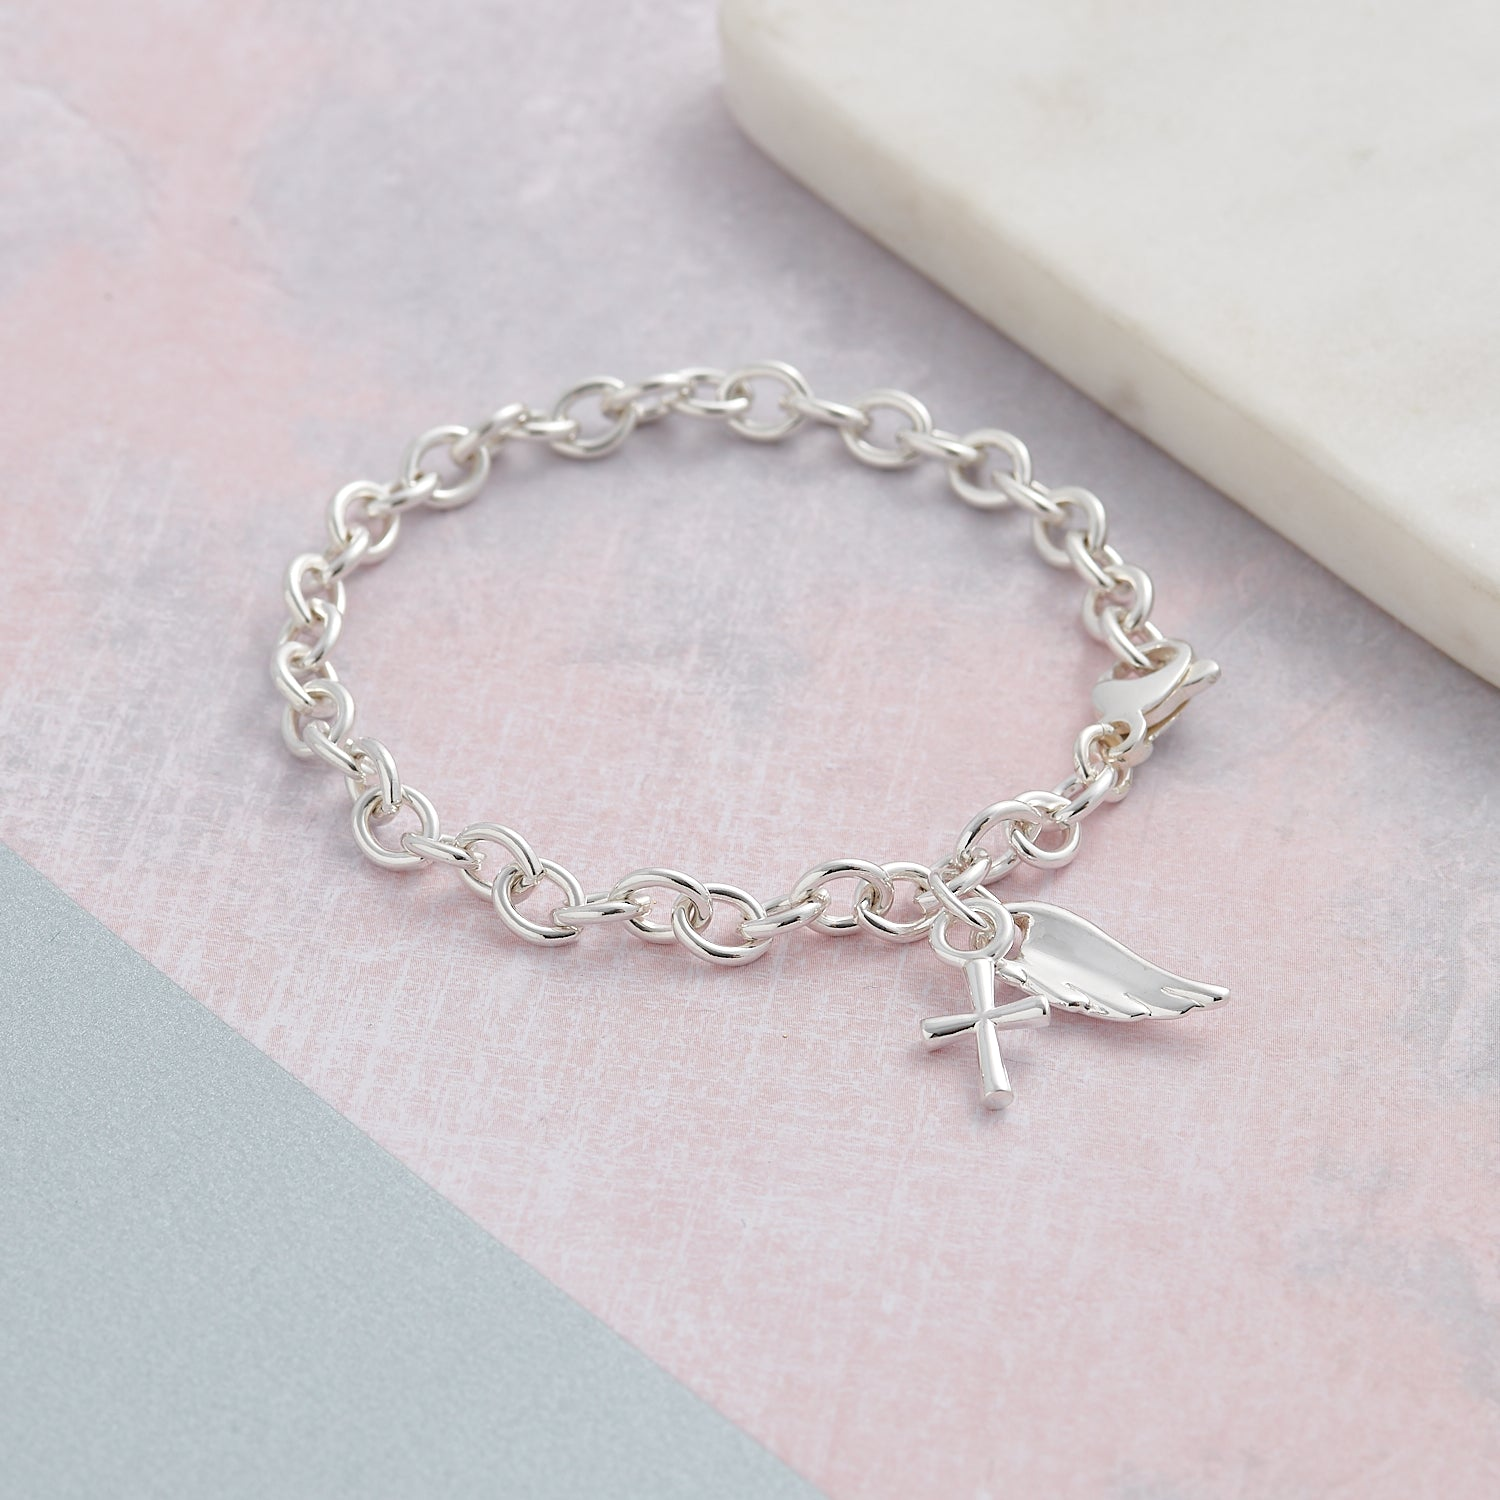 Solid sterling silver angel wing and cross christening charm bracelet designer Scarlett Jewellery